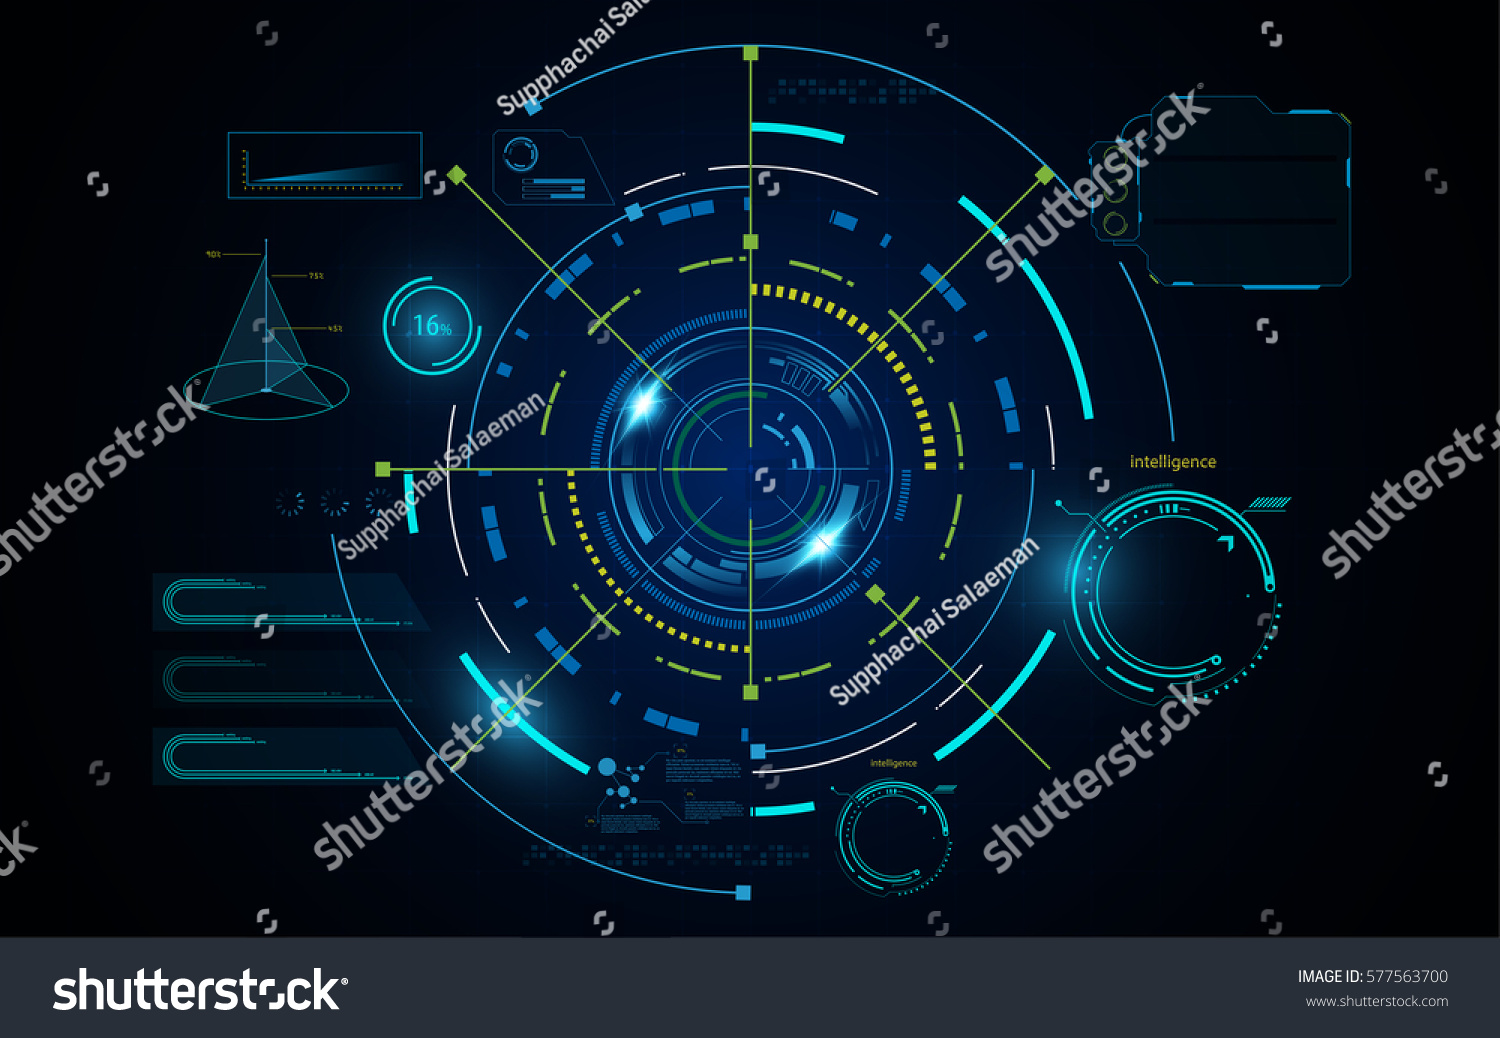 Futuristic Hi Tech Background Vector: Hud Futuristic Digital Hi Tech Sci Stock Vector 577563700